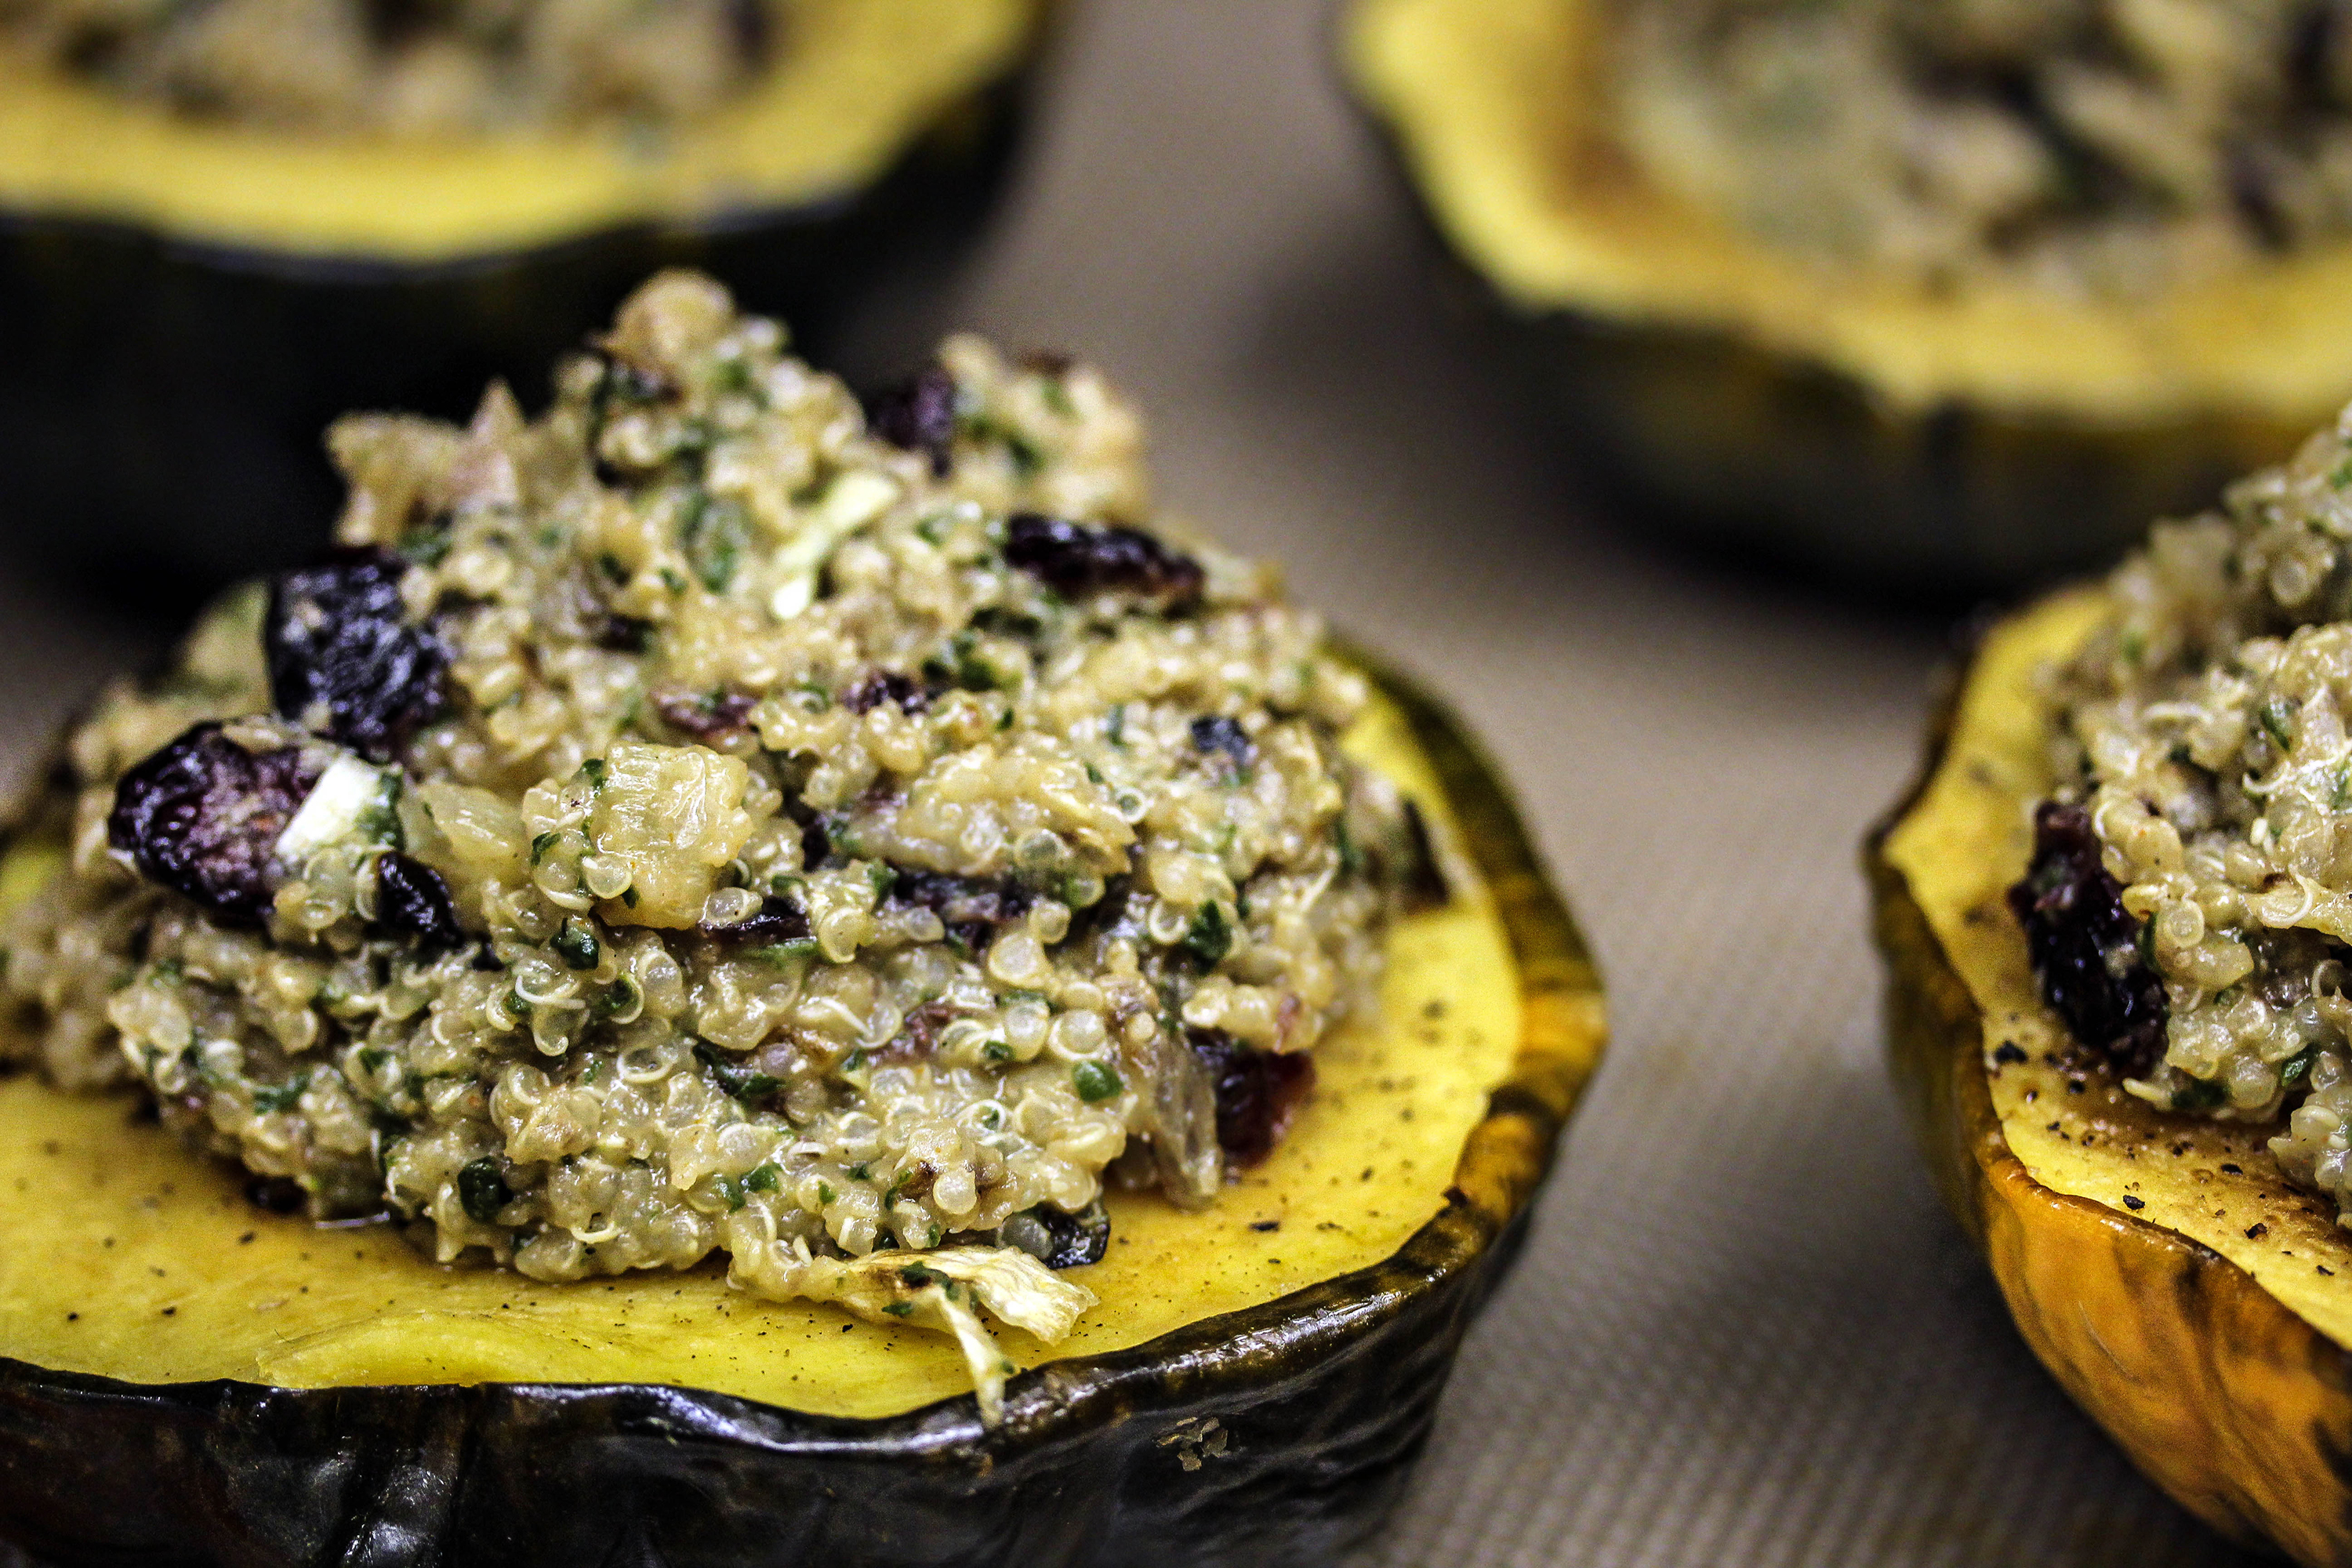 Roasted Acorn Squash with added Cranberry Walnut and Quinoa filling